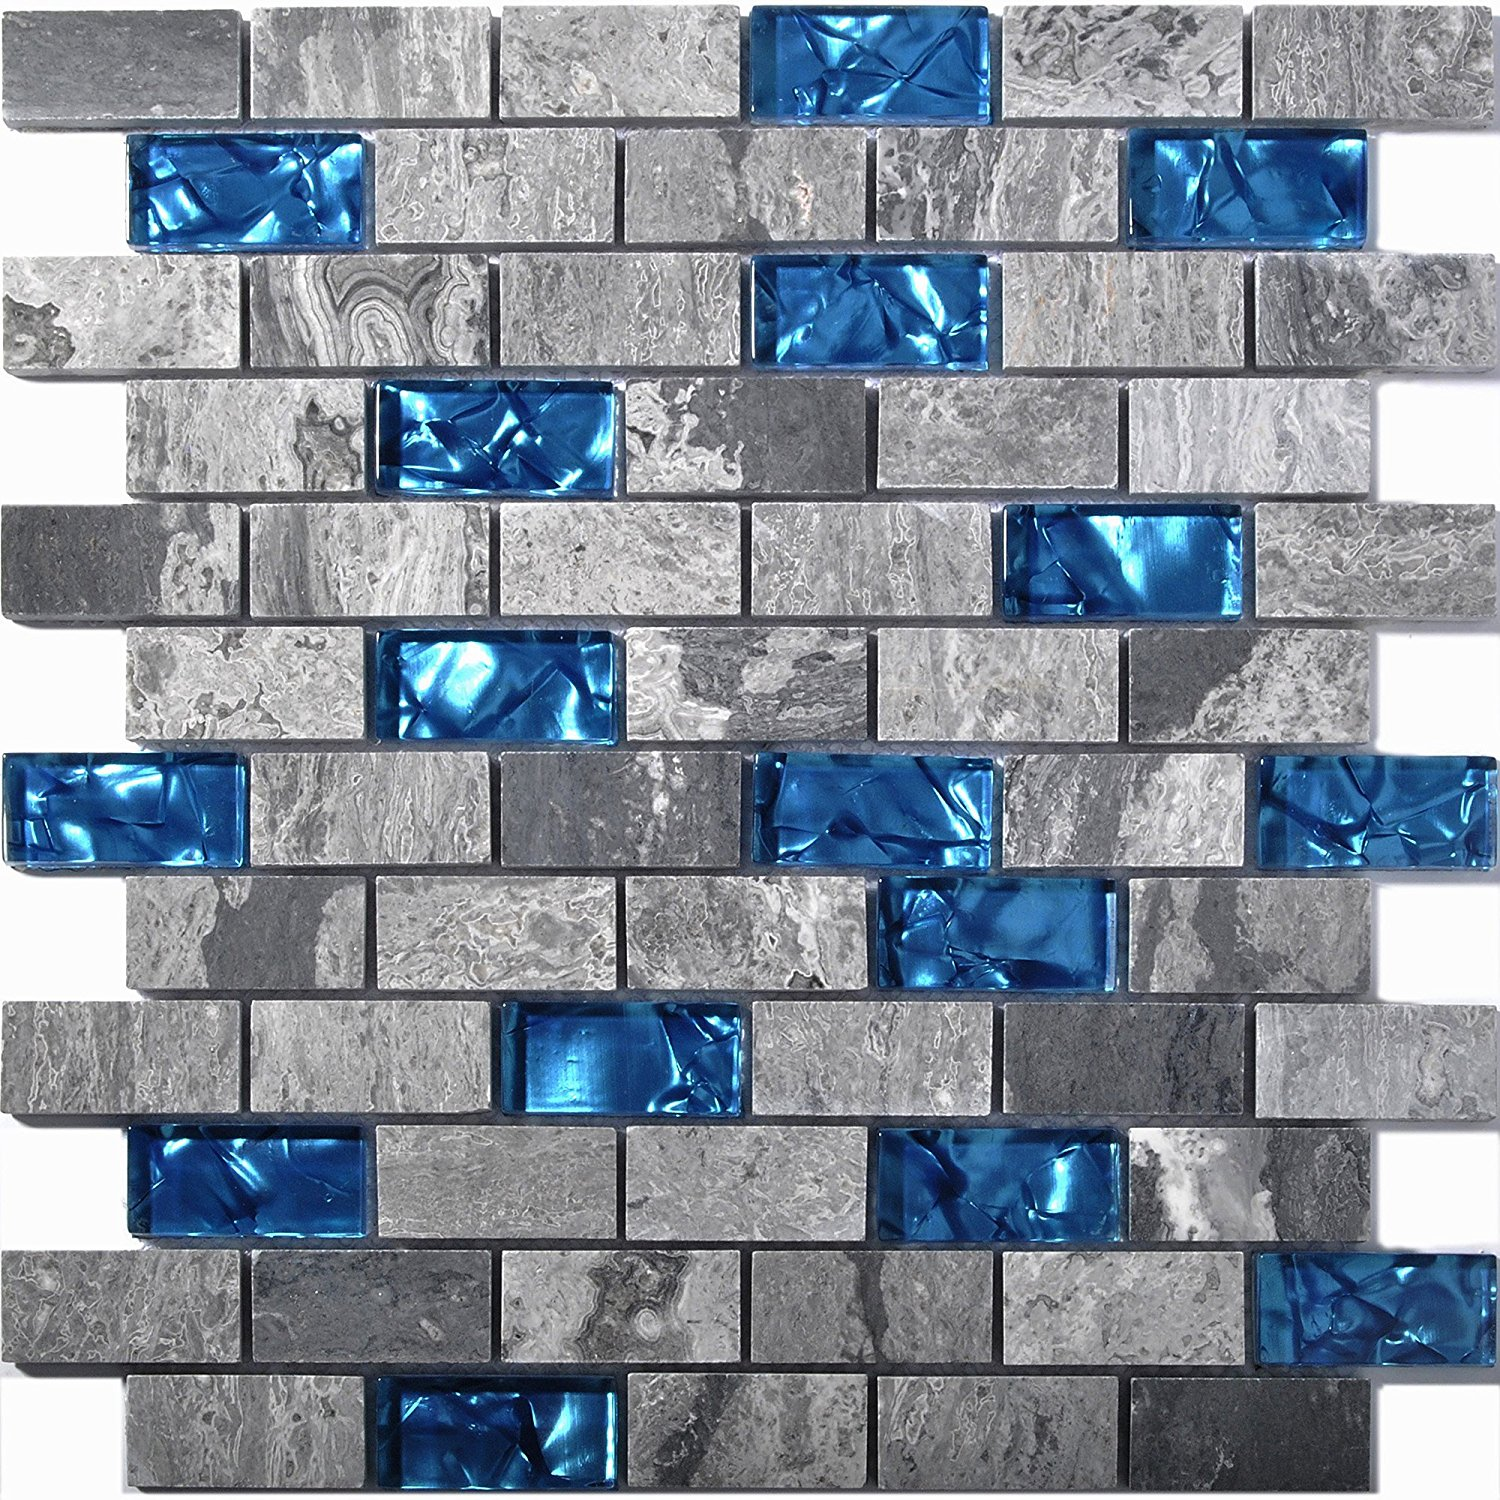 Ocean Blue Glass Mosaic Grey Marble 1 Quot X 2 Quot Subway Wall Tiles